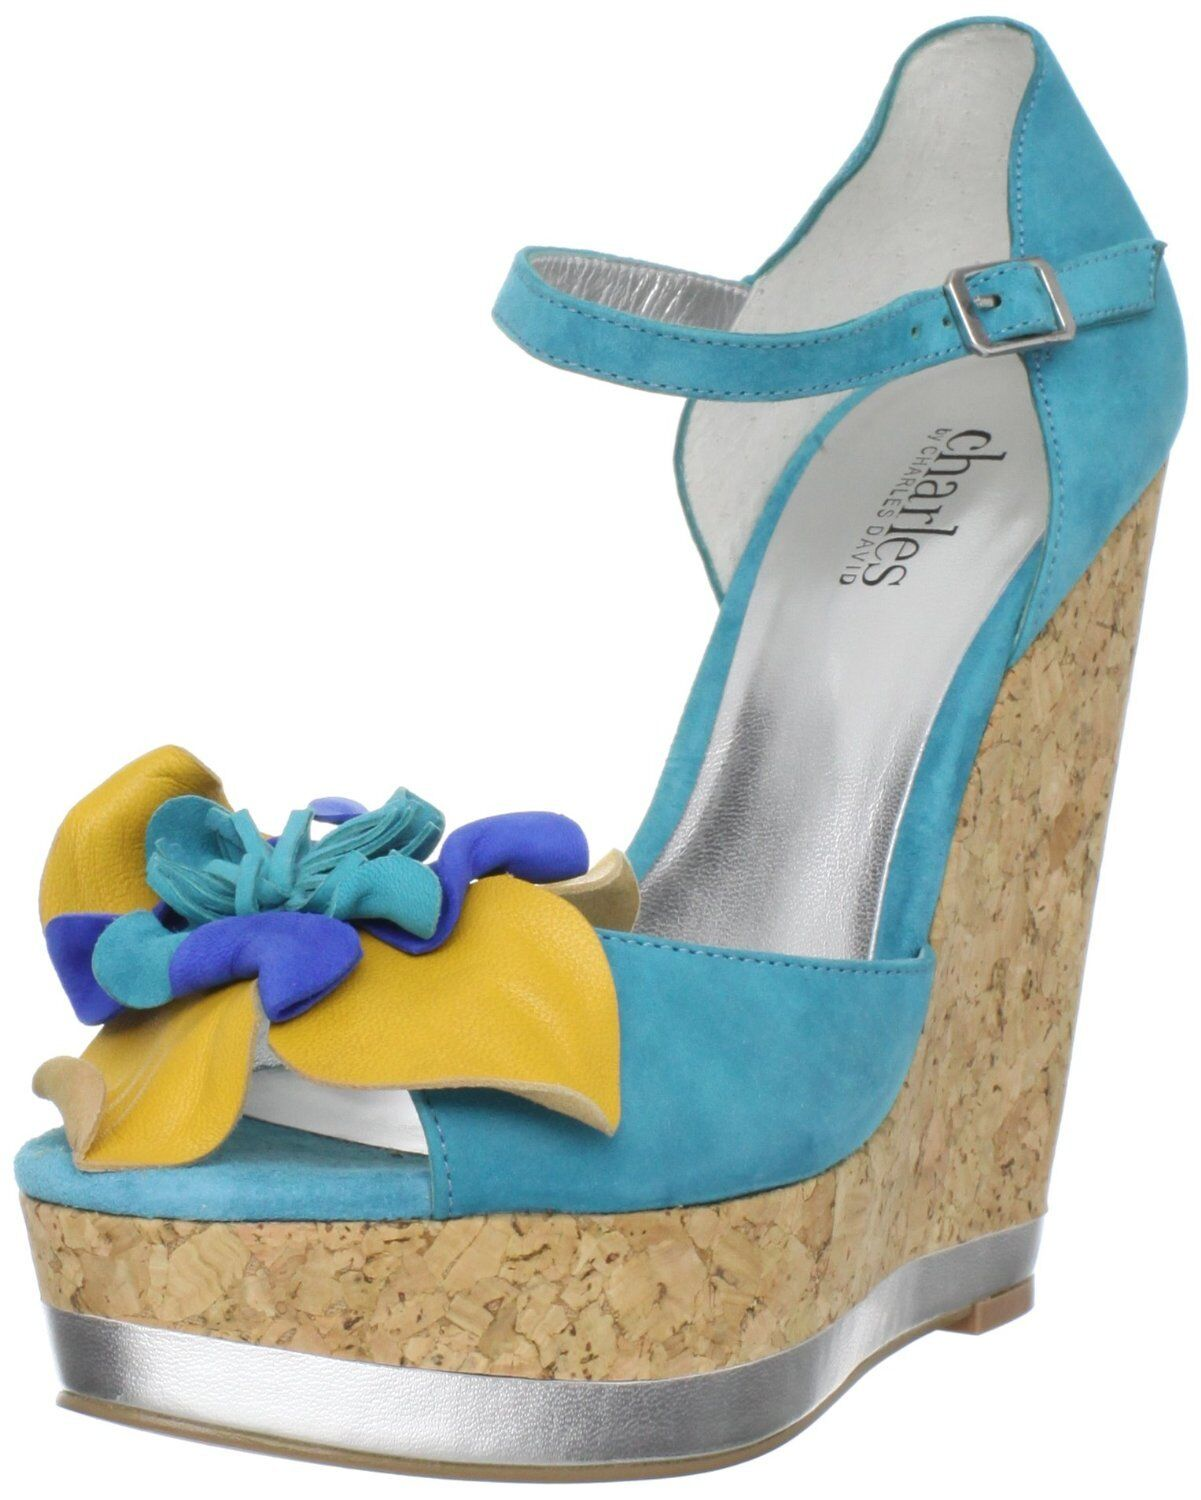 New Charles by Charles David Women's Delightful Wedge Sandals size 9.5